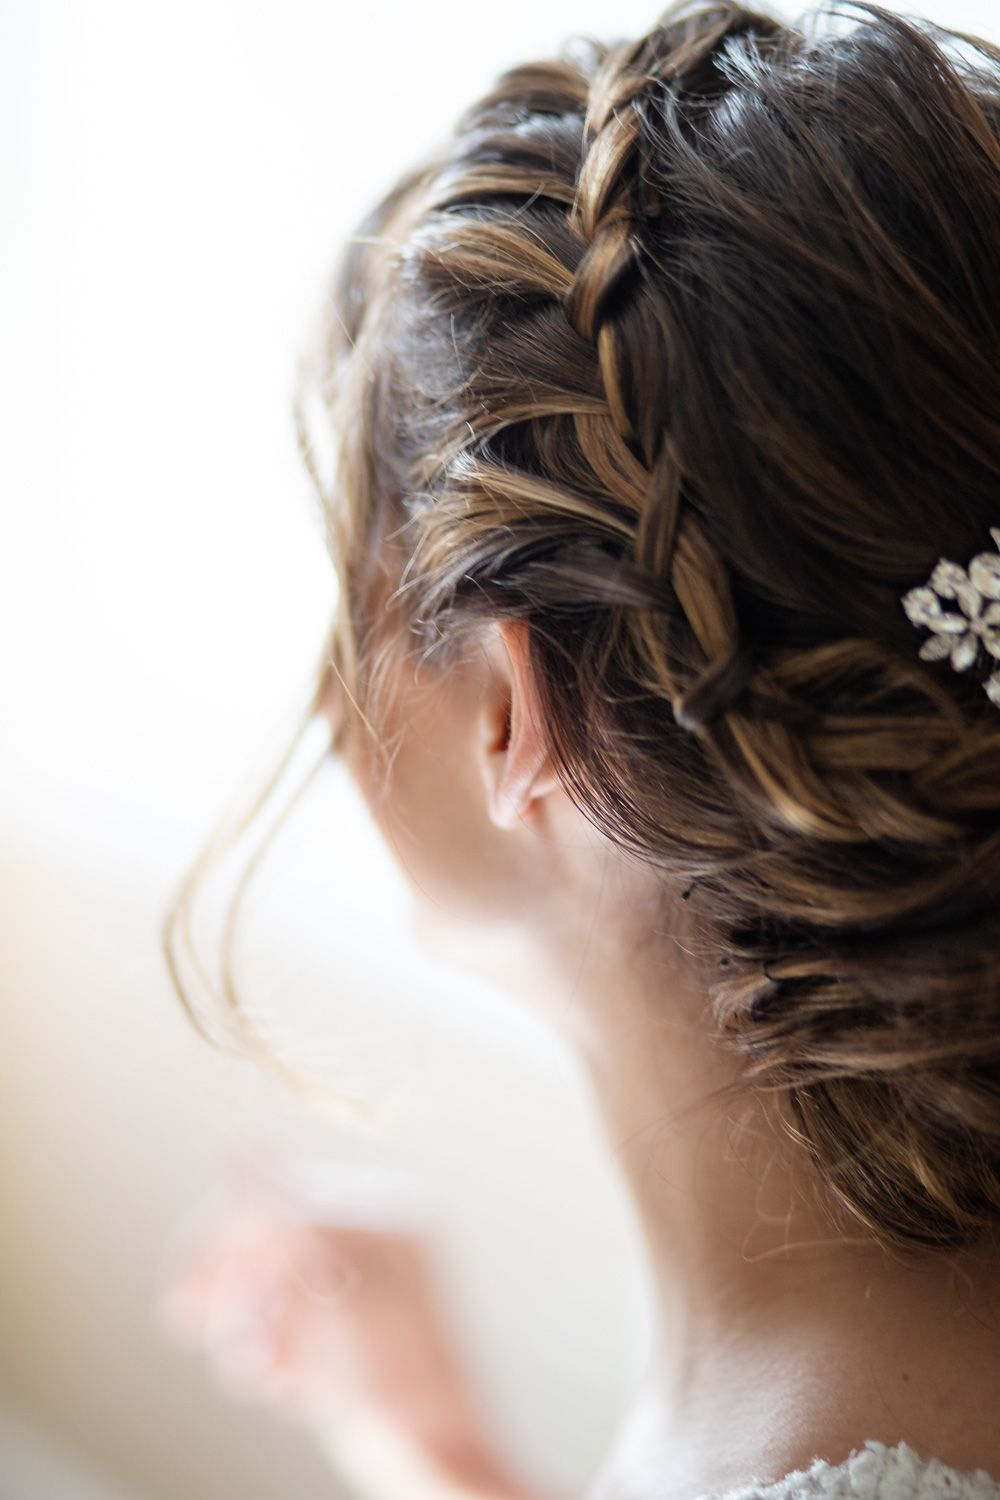 Connecticut bride with braided hair